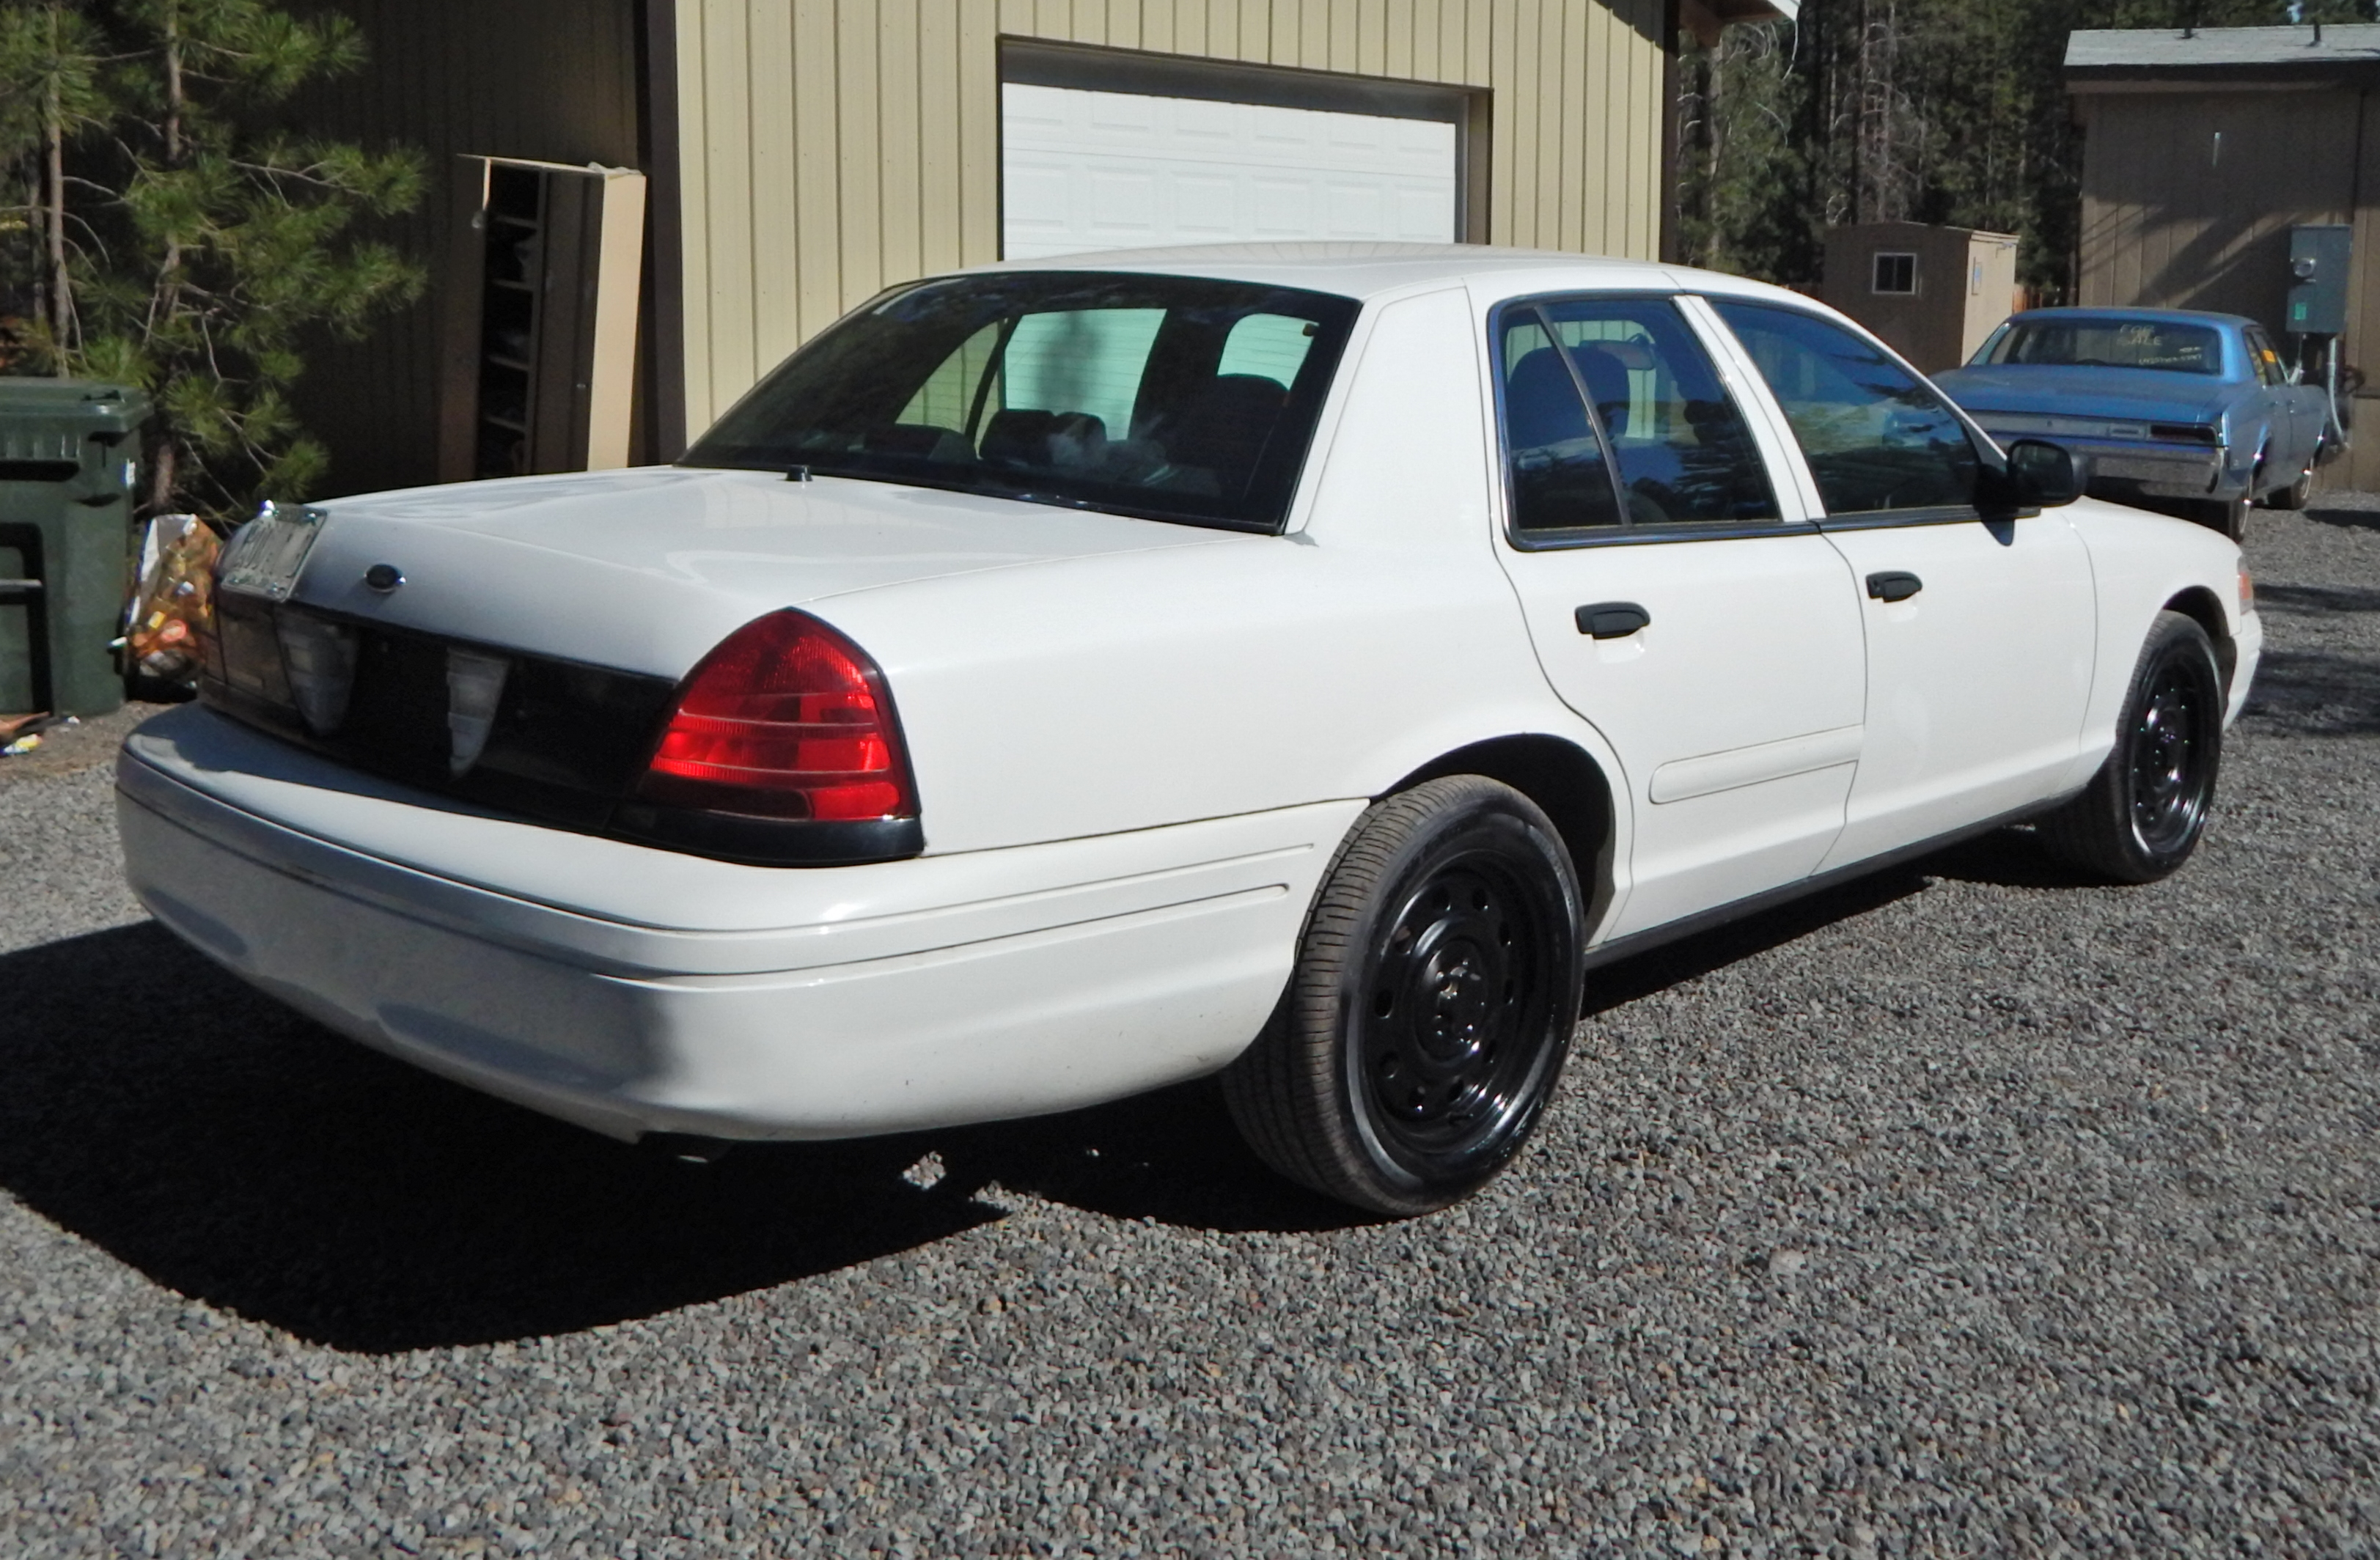 2006 Ford Crown Victoria P71 cruise control - Interceptor King